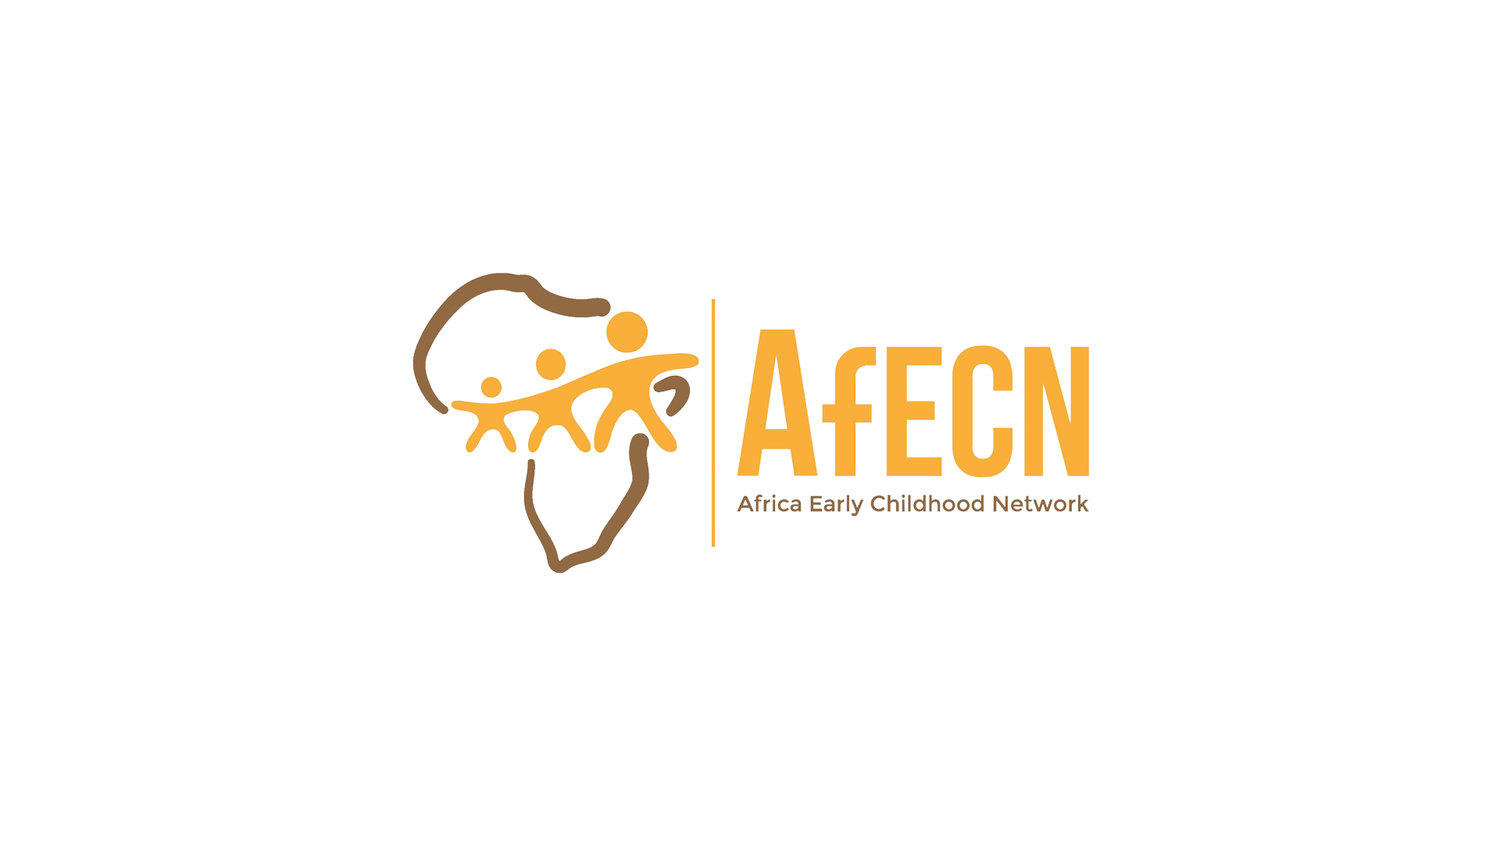 invitation to join afecn working group safe and thriving children